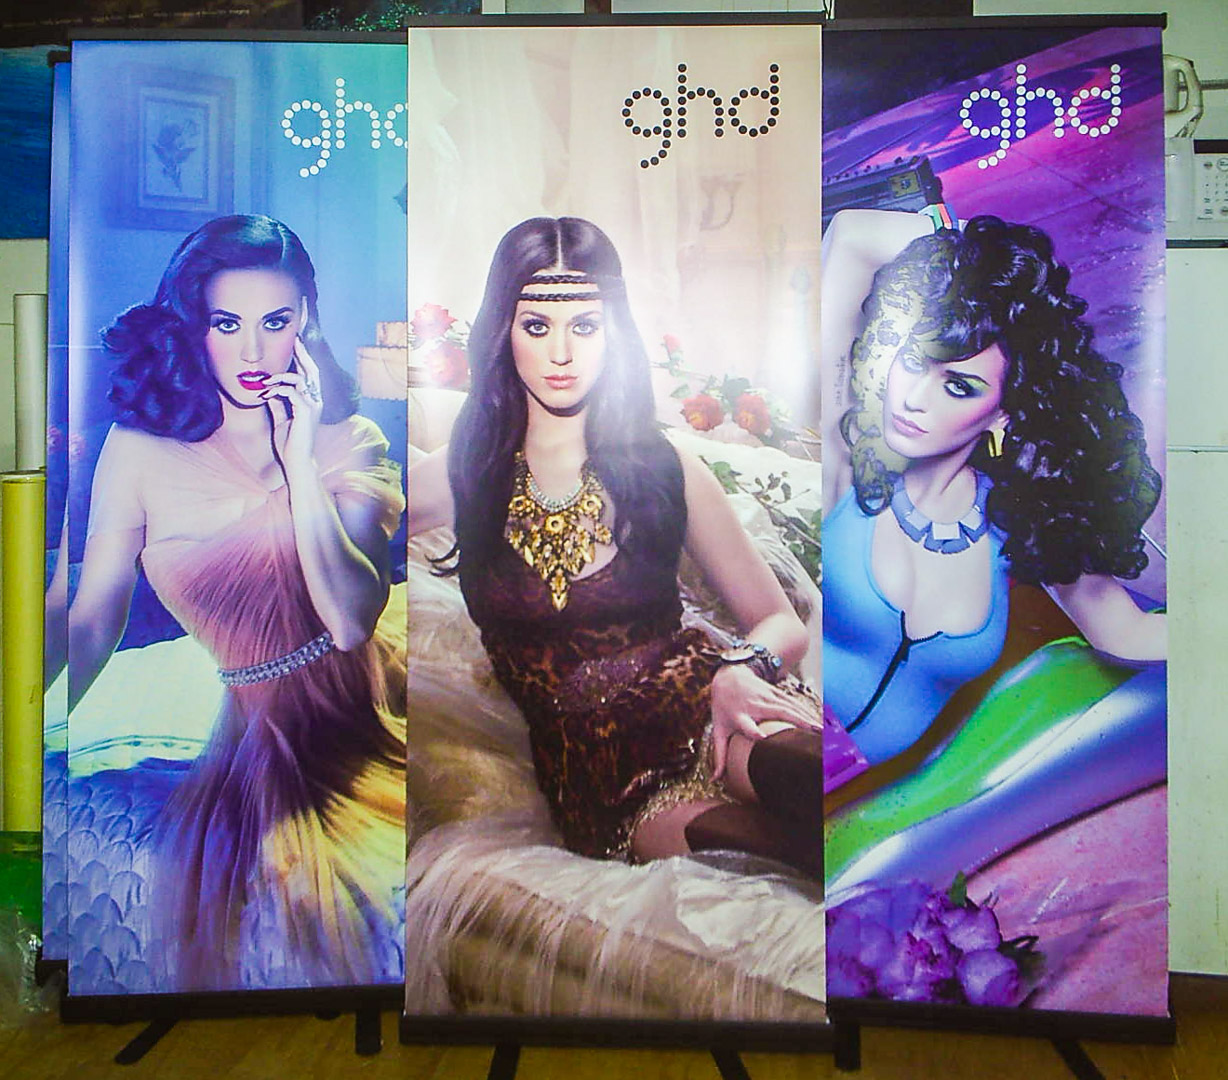 GHD - Katey Perry